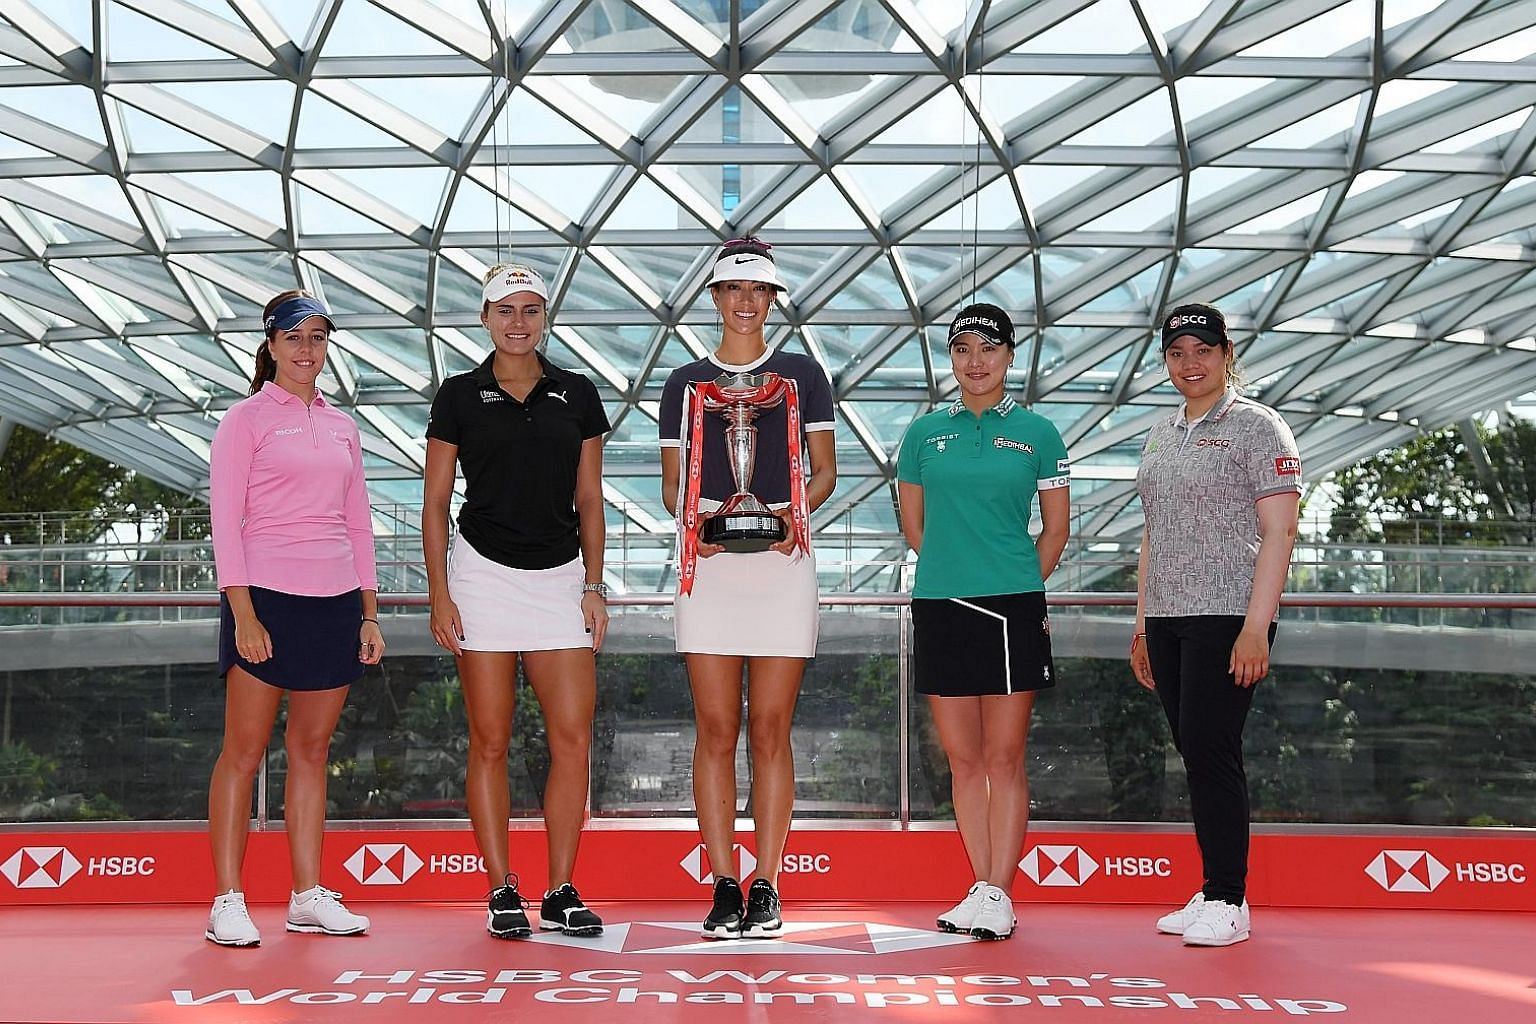 From far left: Georgia Hall, Lexi Thompson, defending champion Michelle Wie, Ryu So-yeon and world No. 1 Ariya Jutanugarn at Singapore's latest attraction - Jewel Changi Airport - before they get down to business at the HSBC Women's World Championshi